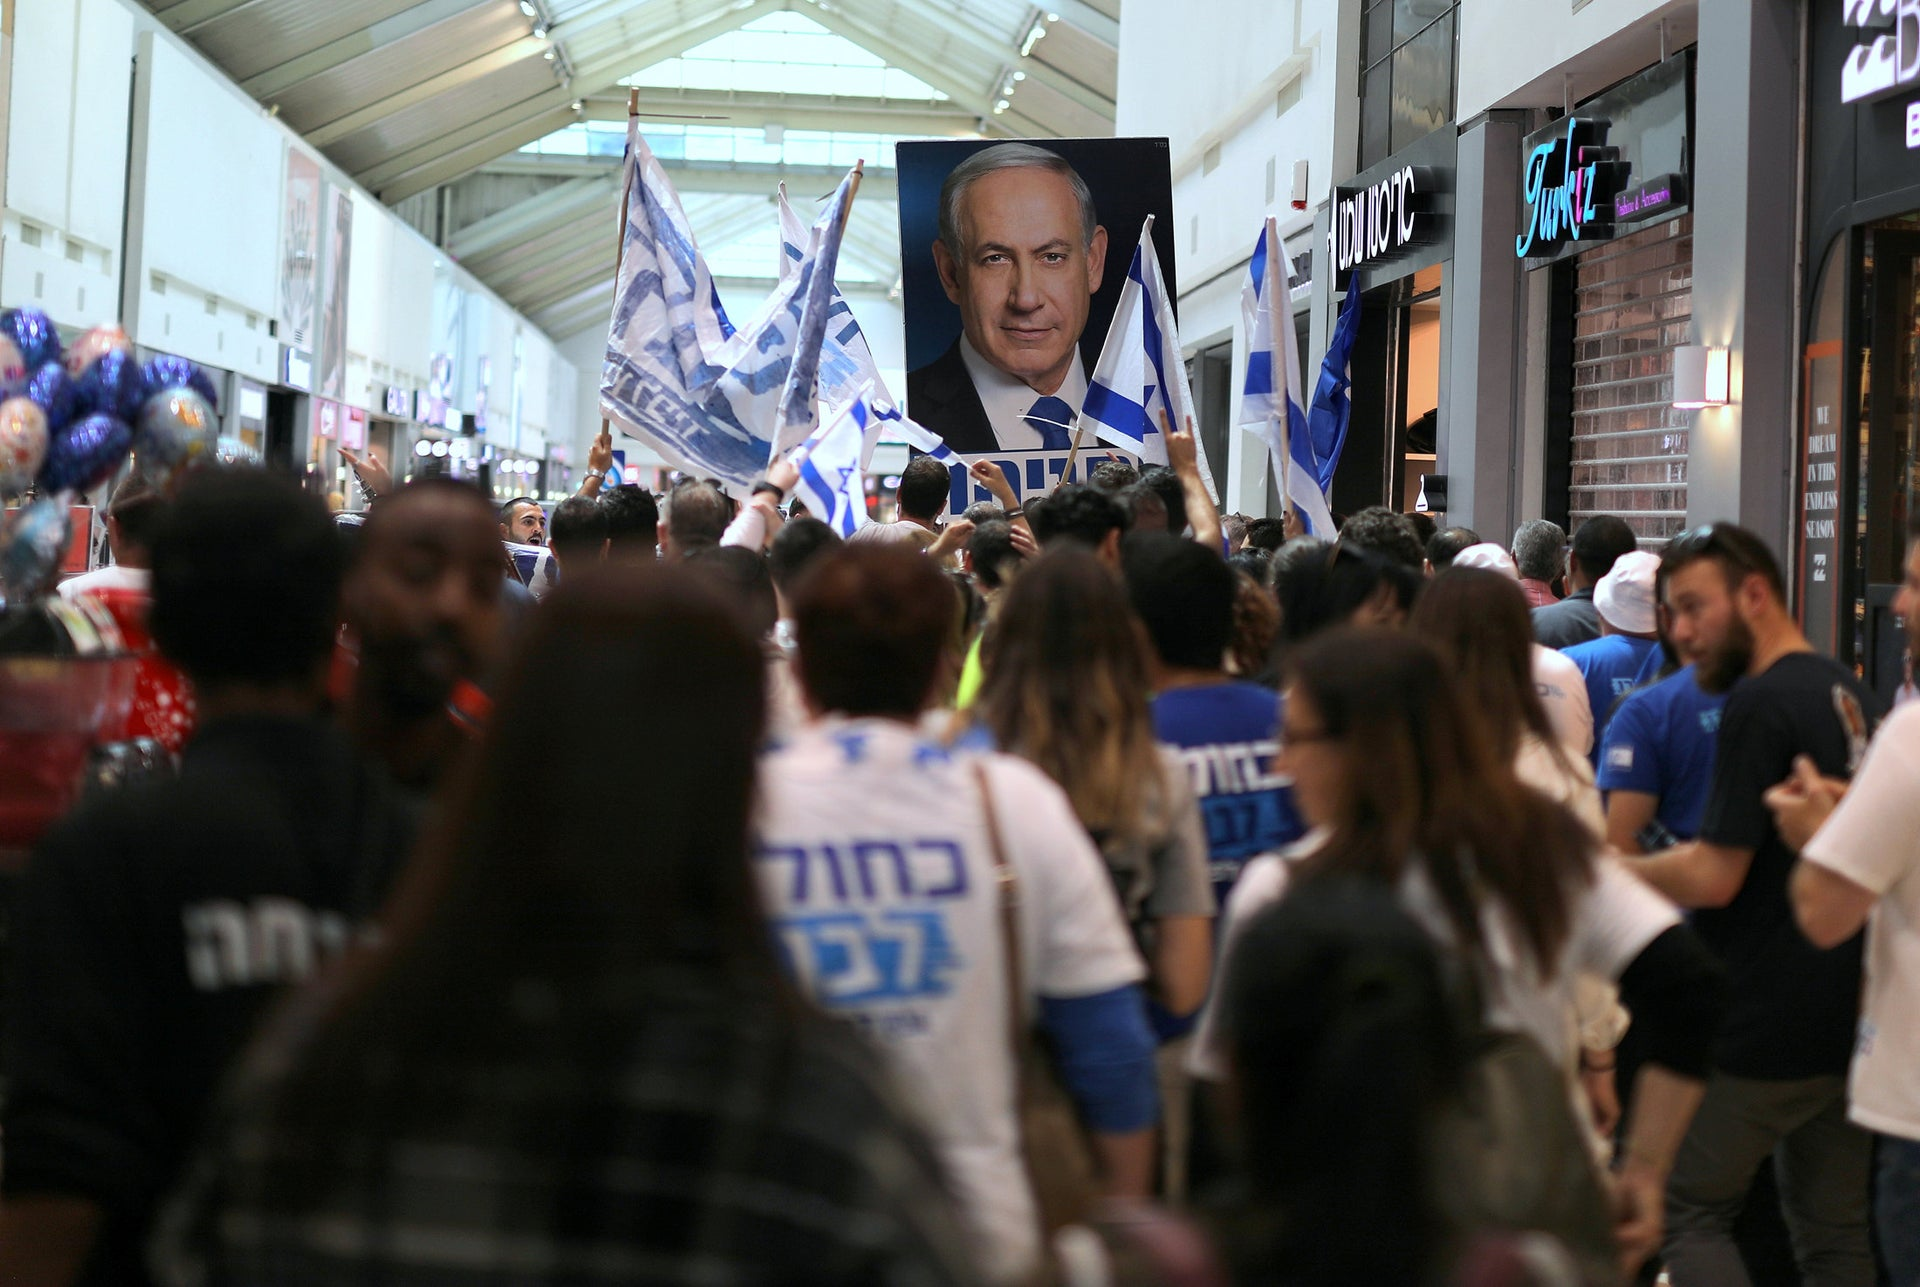 Supporters of Benny Gantz's Kahol Lavan party at a mall in Rehovot, April 4, 2019.